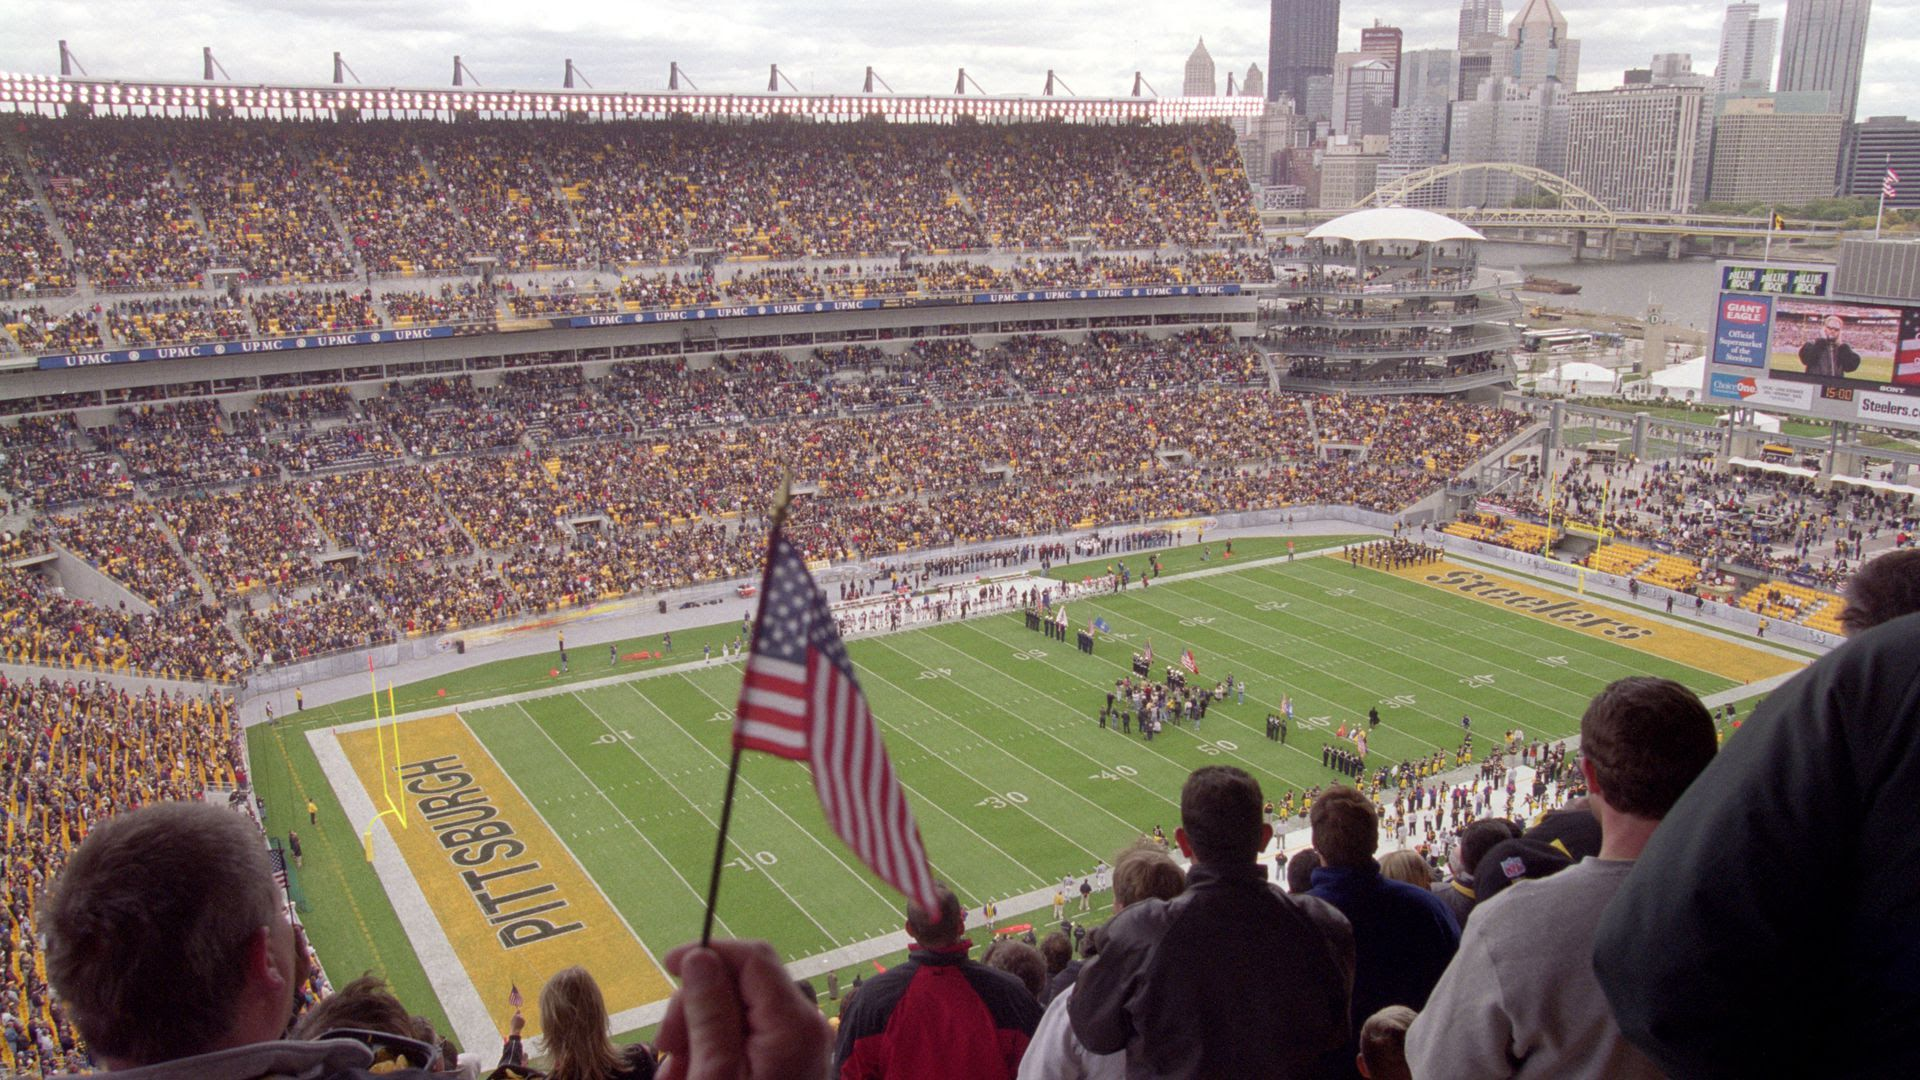 The Steelers' first-ever game at Heinz Field on Oct. 7, 2001